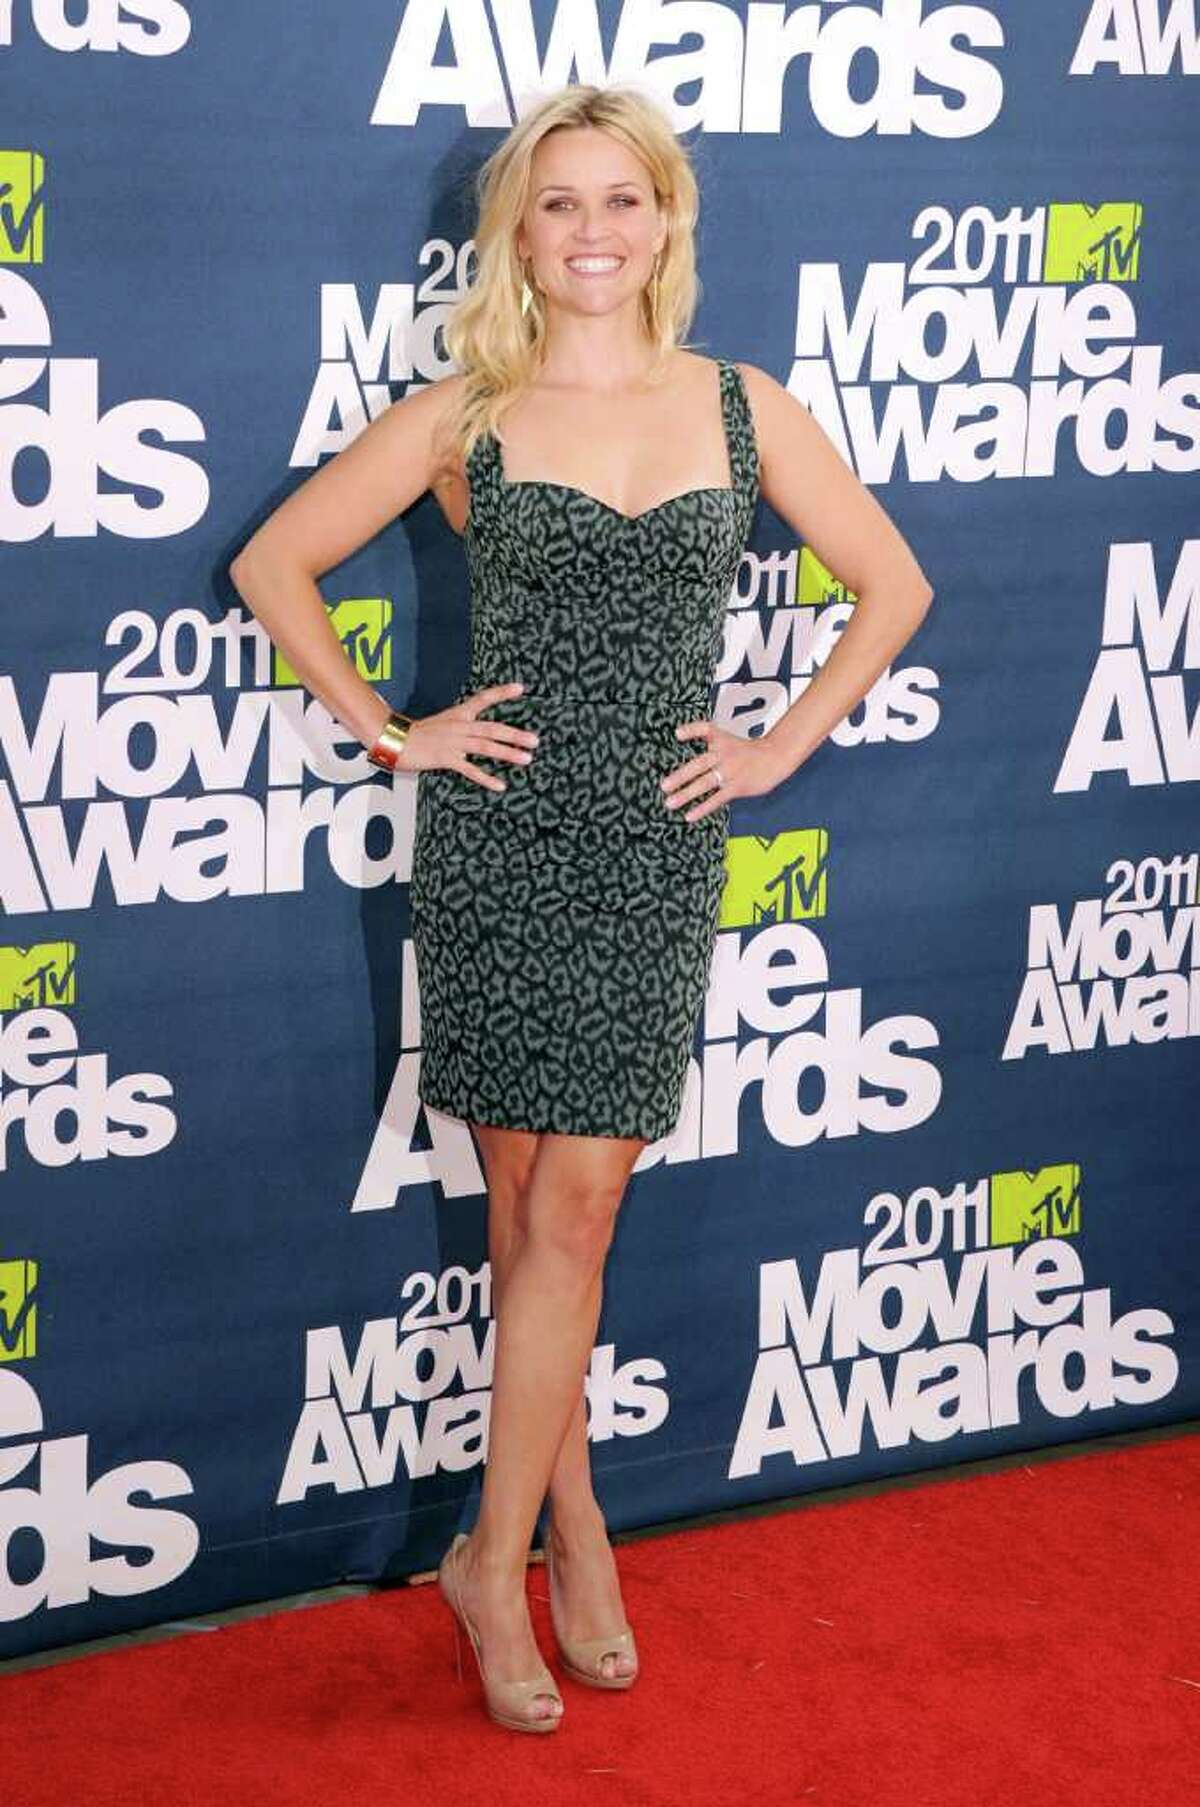 Actress Reese Witherspoon arrives at the 2011 MTV Movie Awards at Universal Studios' Gibson Amphitheatre in Universal City, Calif., on Sunday, June 5, 2011.